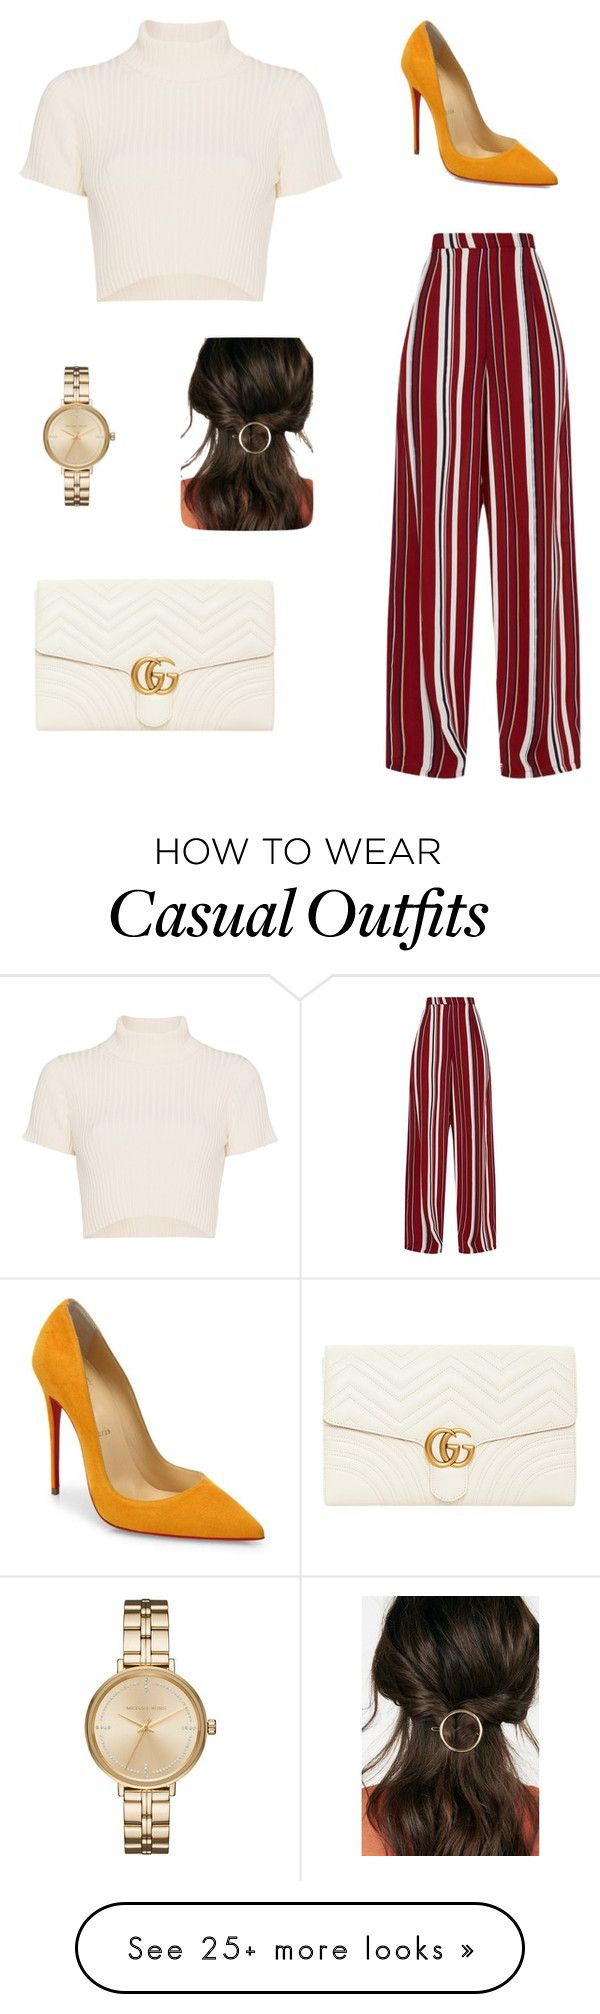 """Casual"" by ashleyalvarez-1 on Polyvore featuring Staud, Christian Louboutin, Gucci, Michael Kors and JustFab"